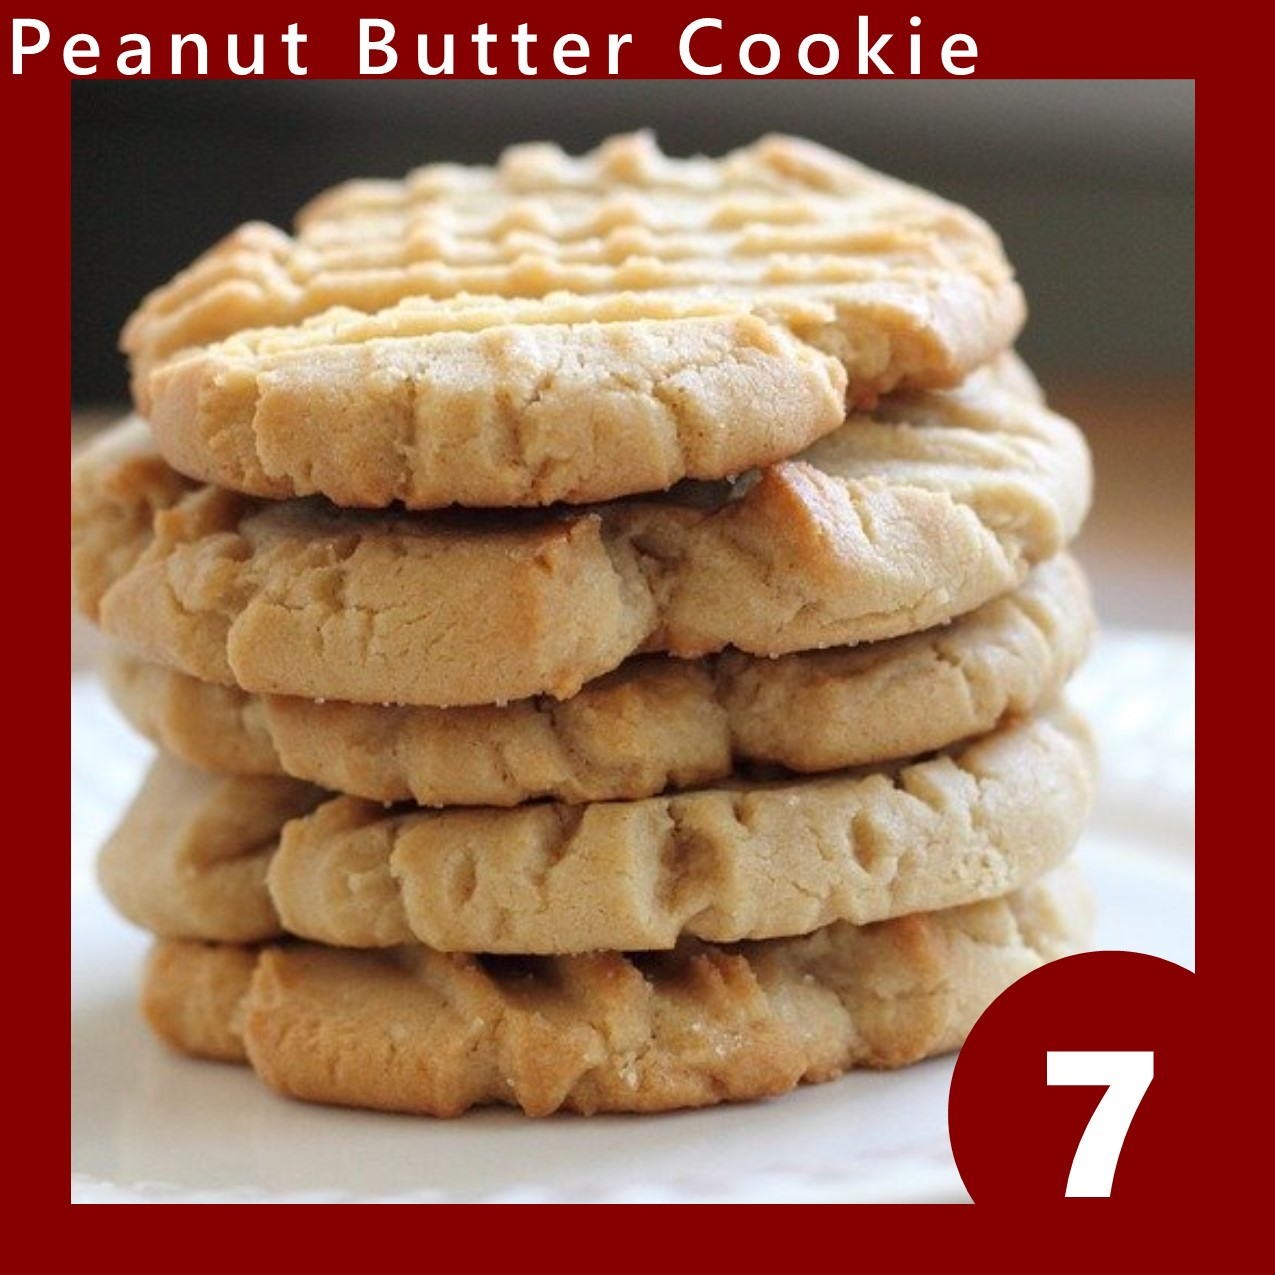 peanut butter cookie image